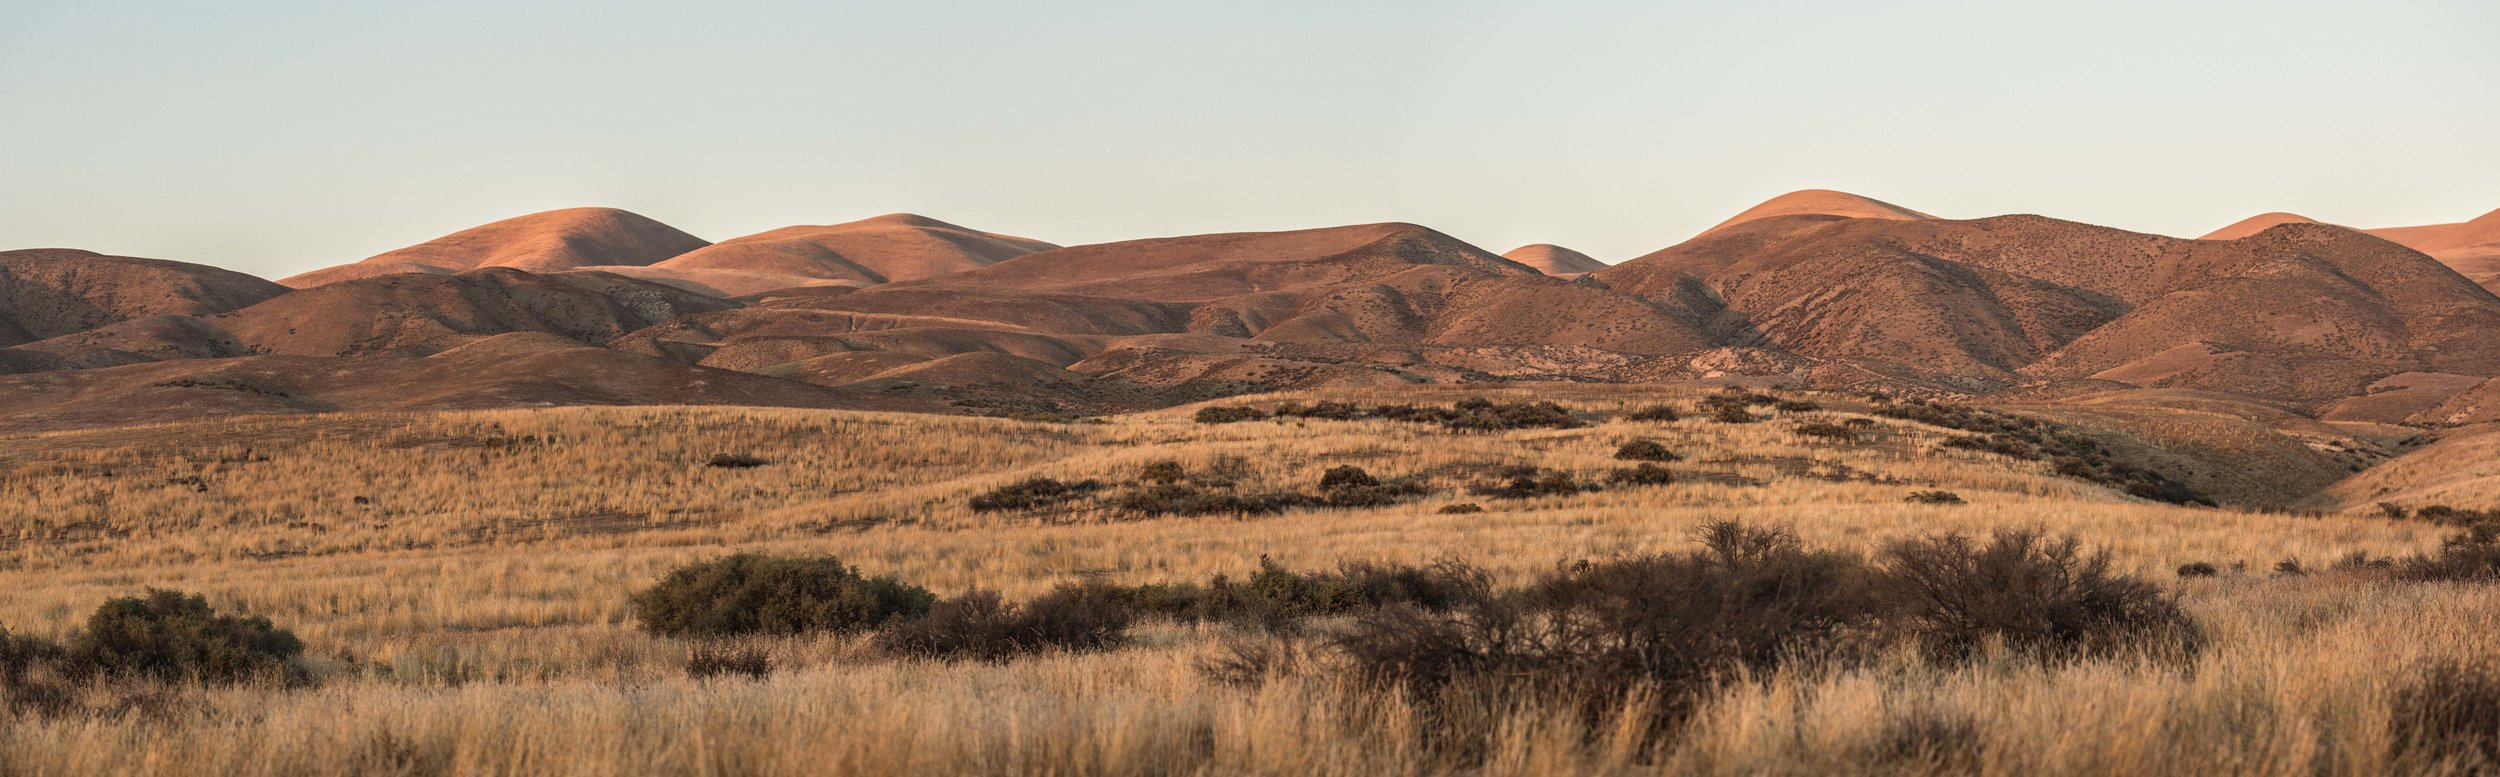 caliente range - The Caliente Range, which runs along the southwestern side of the national monument. When the conditions are just right during spring these mountains explode with colorful wildflowers in an event known as a